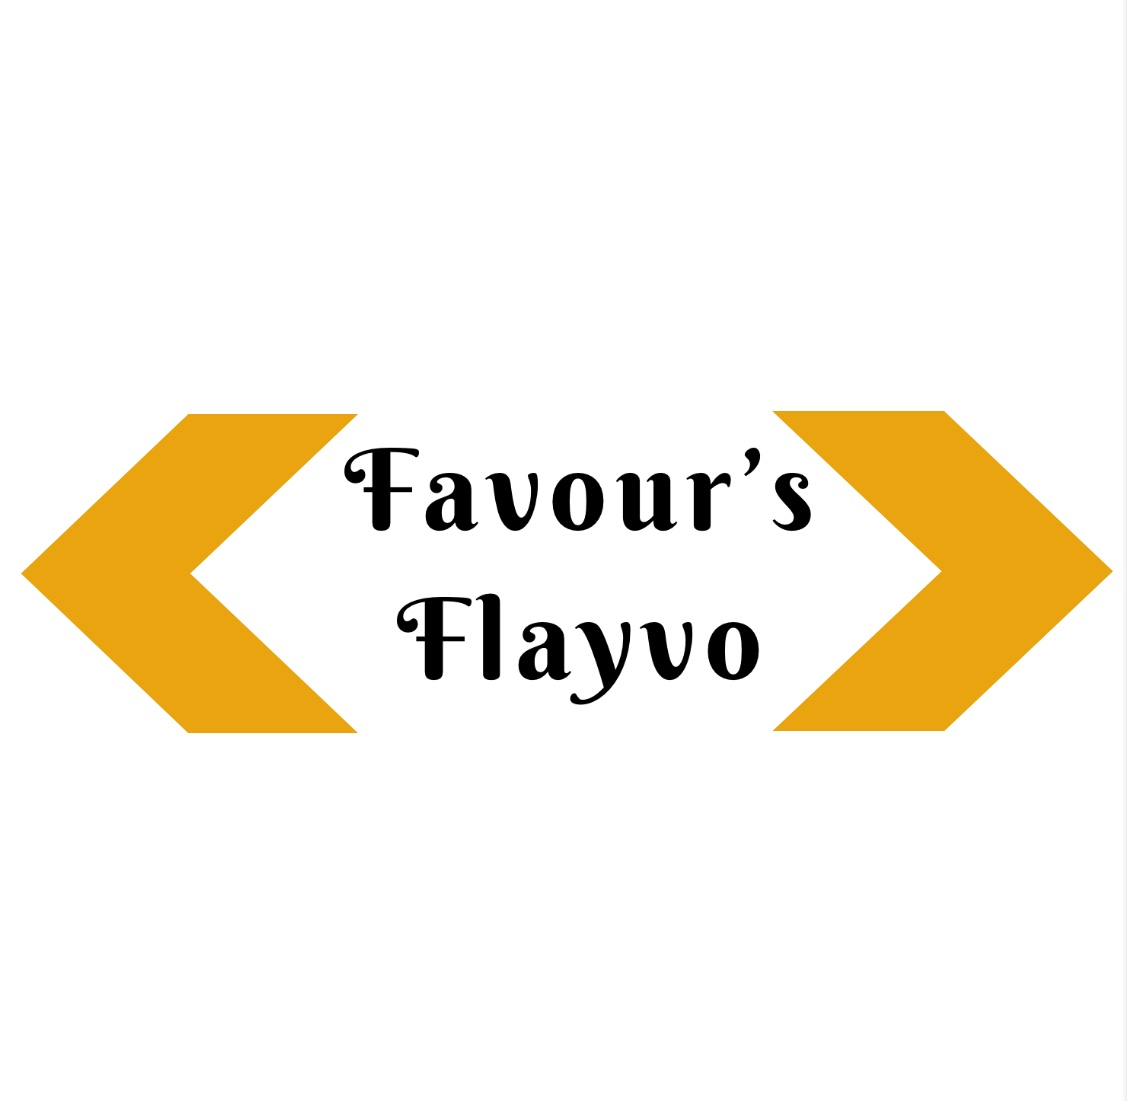 Favour's Flayvo